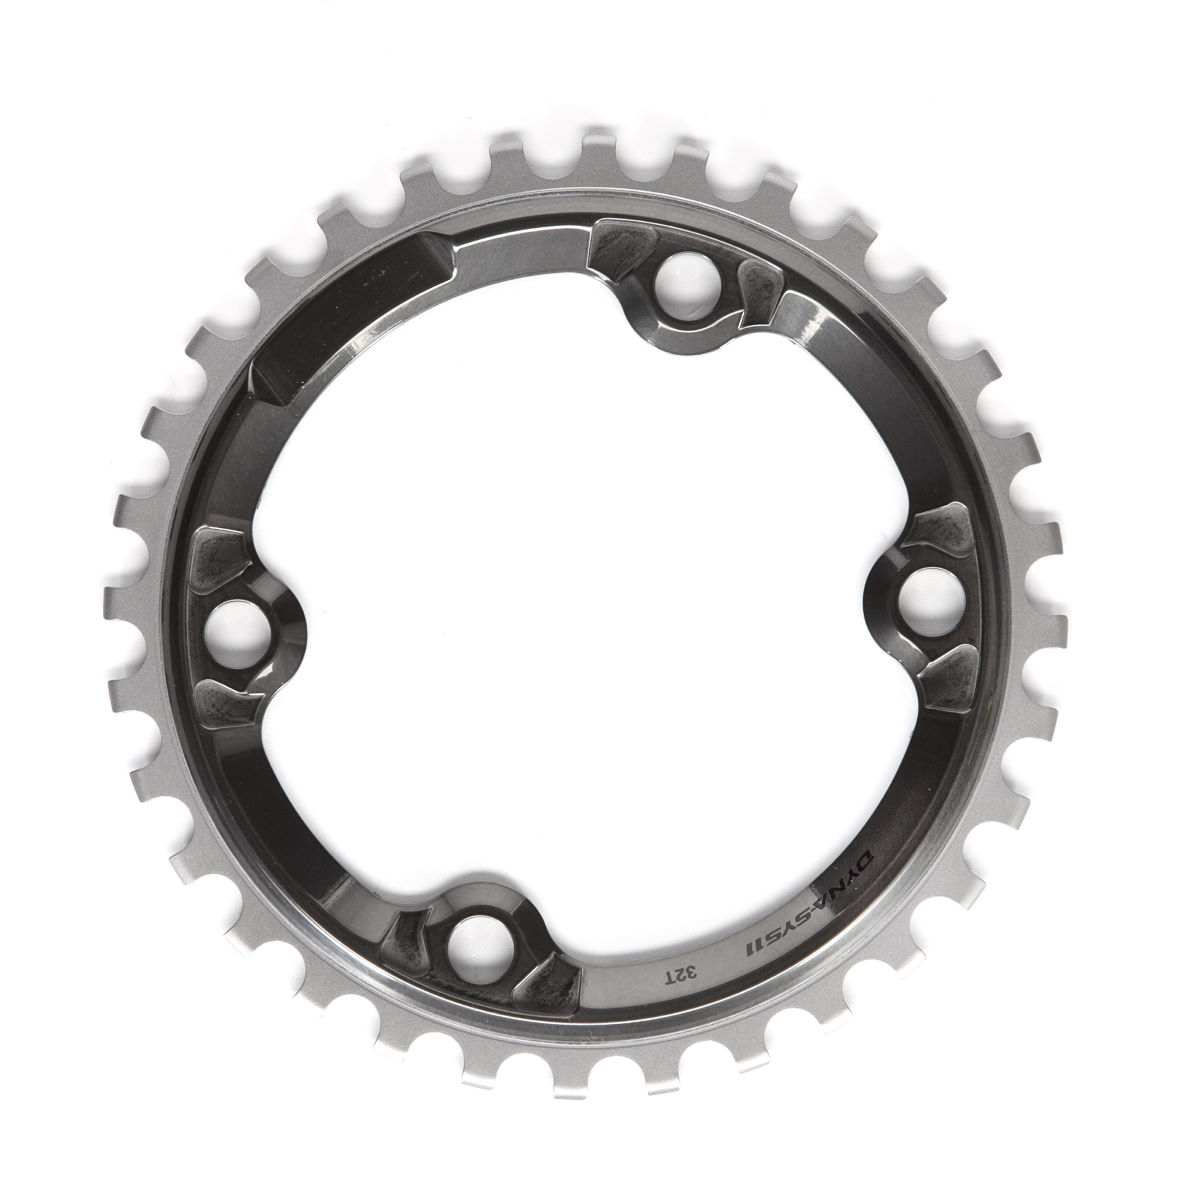 Plateau de rétention simple Shimano XTR M9000/9020 - 34T Plateaux